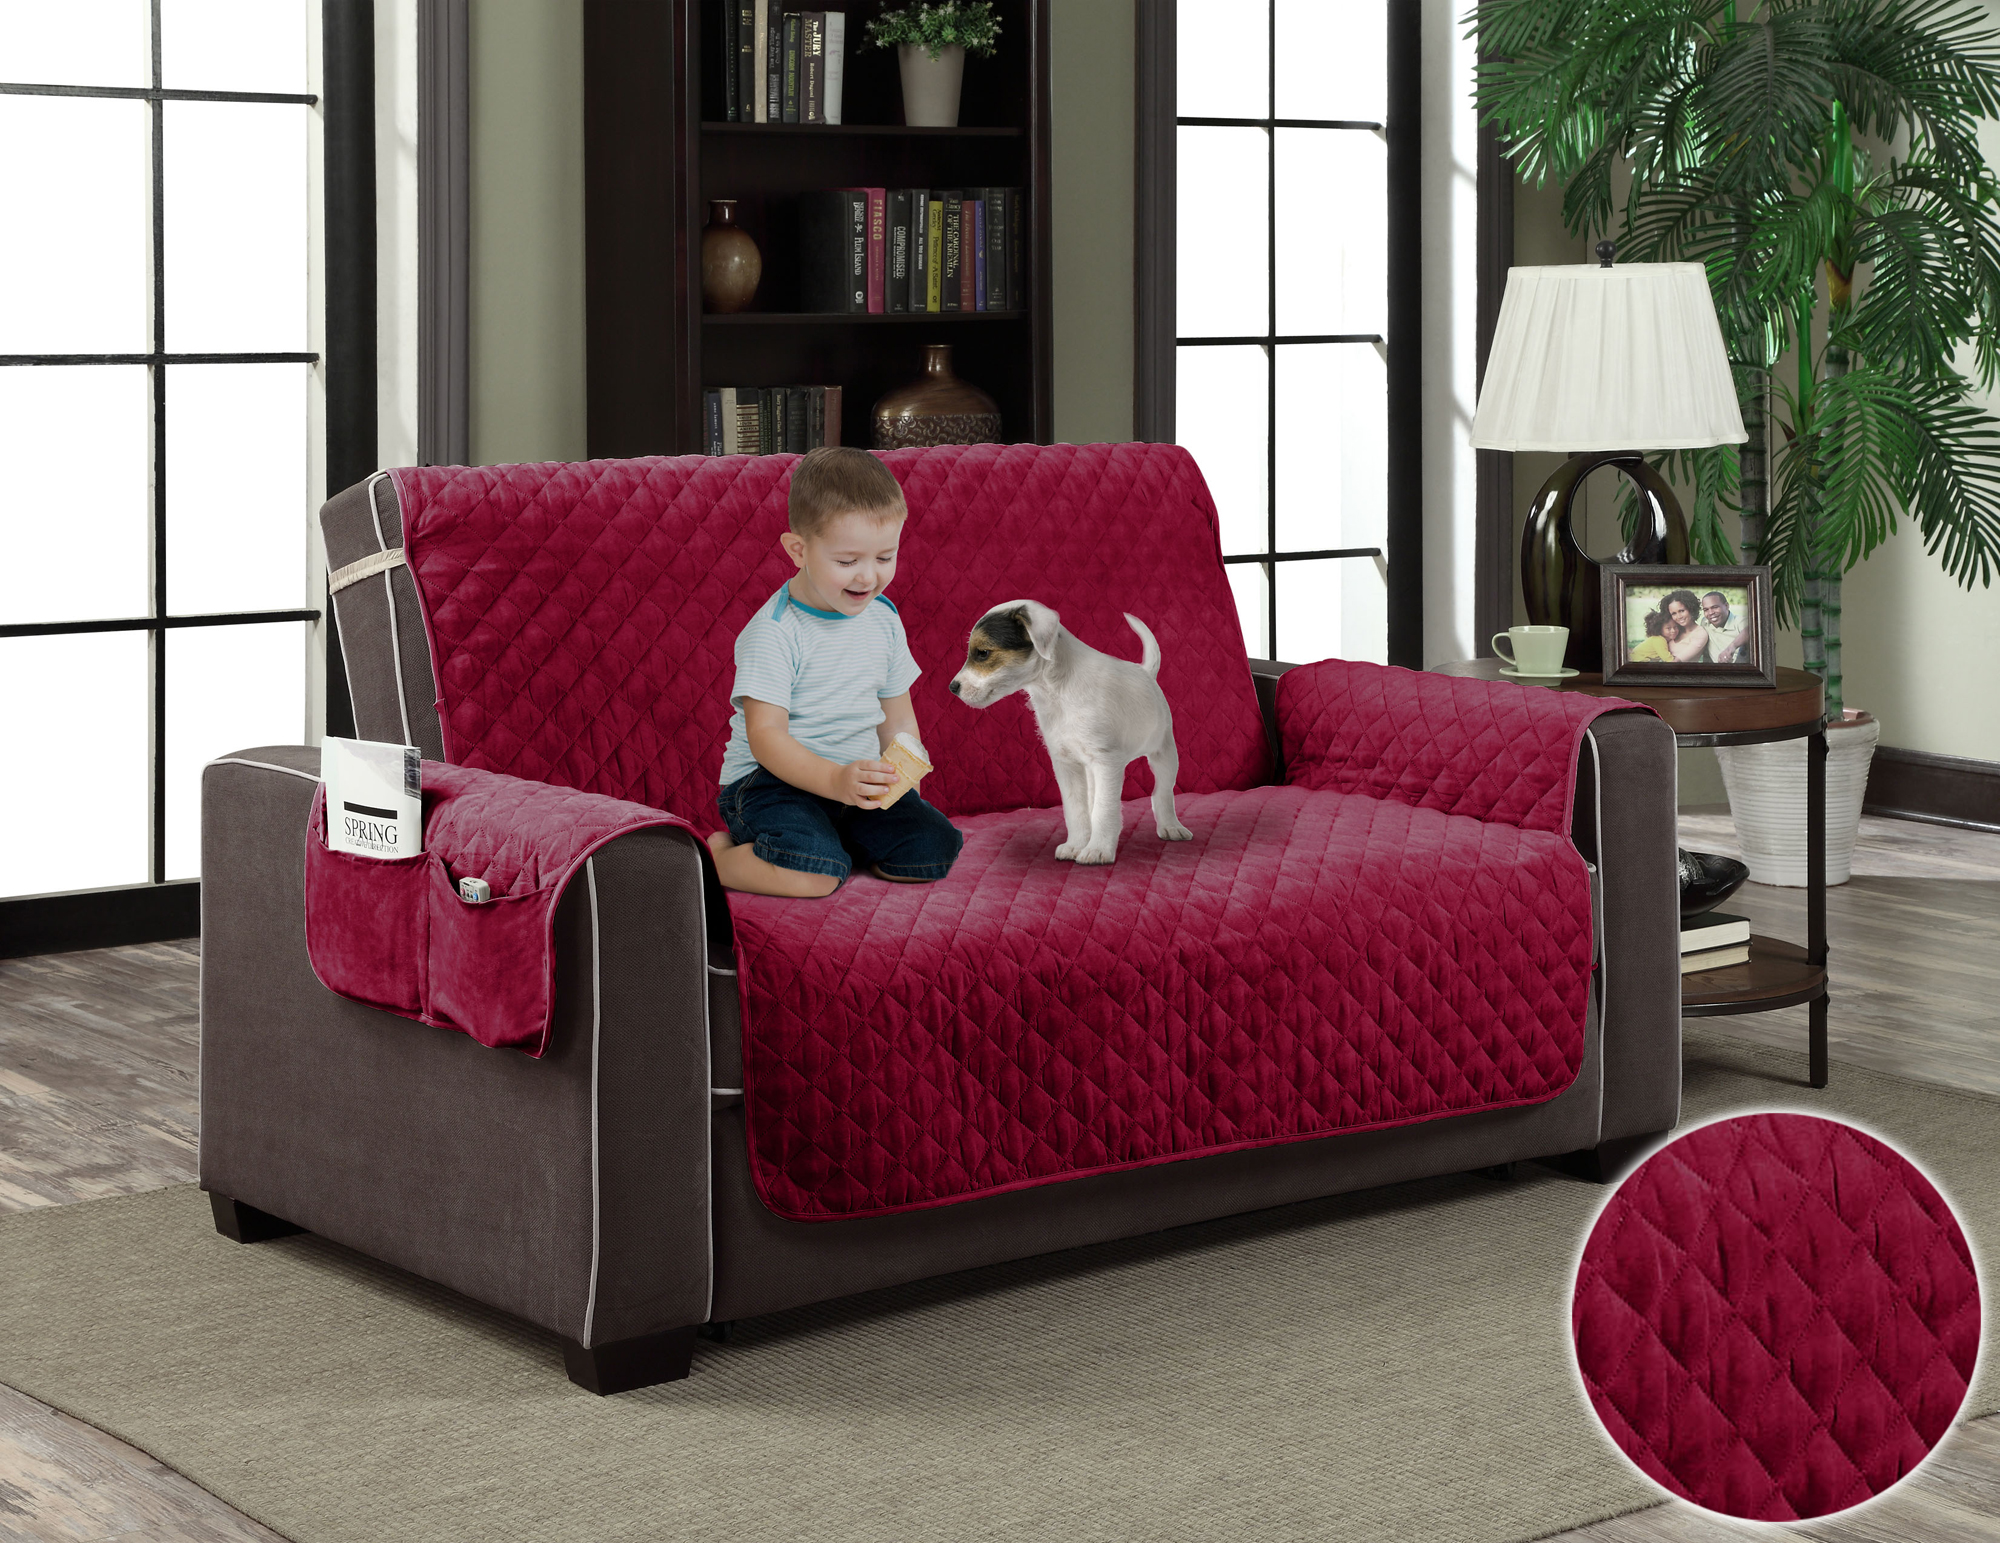 micro suede slipcover pockets pet dog couch furniture protector cover love seat ebay. Black Bedroom Furniture Sets. Home Design Ideas